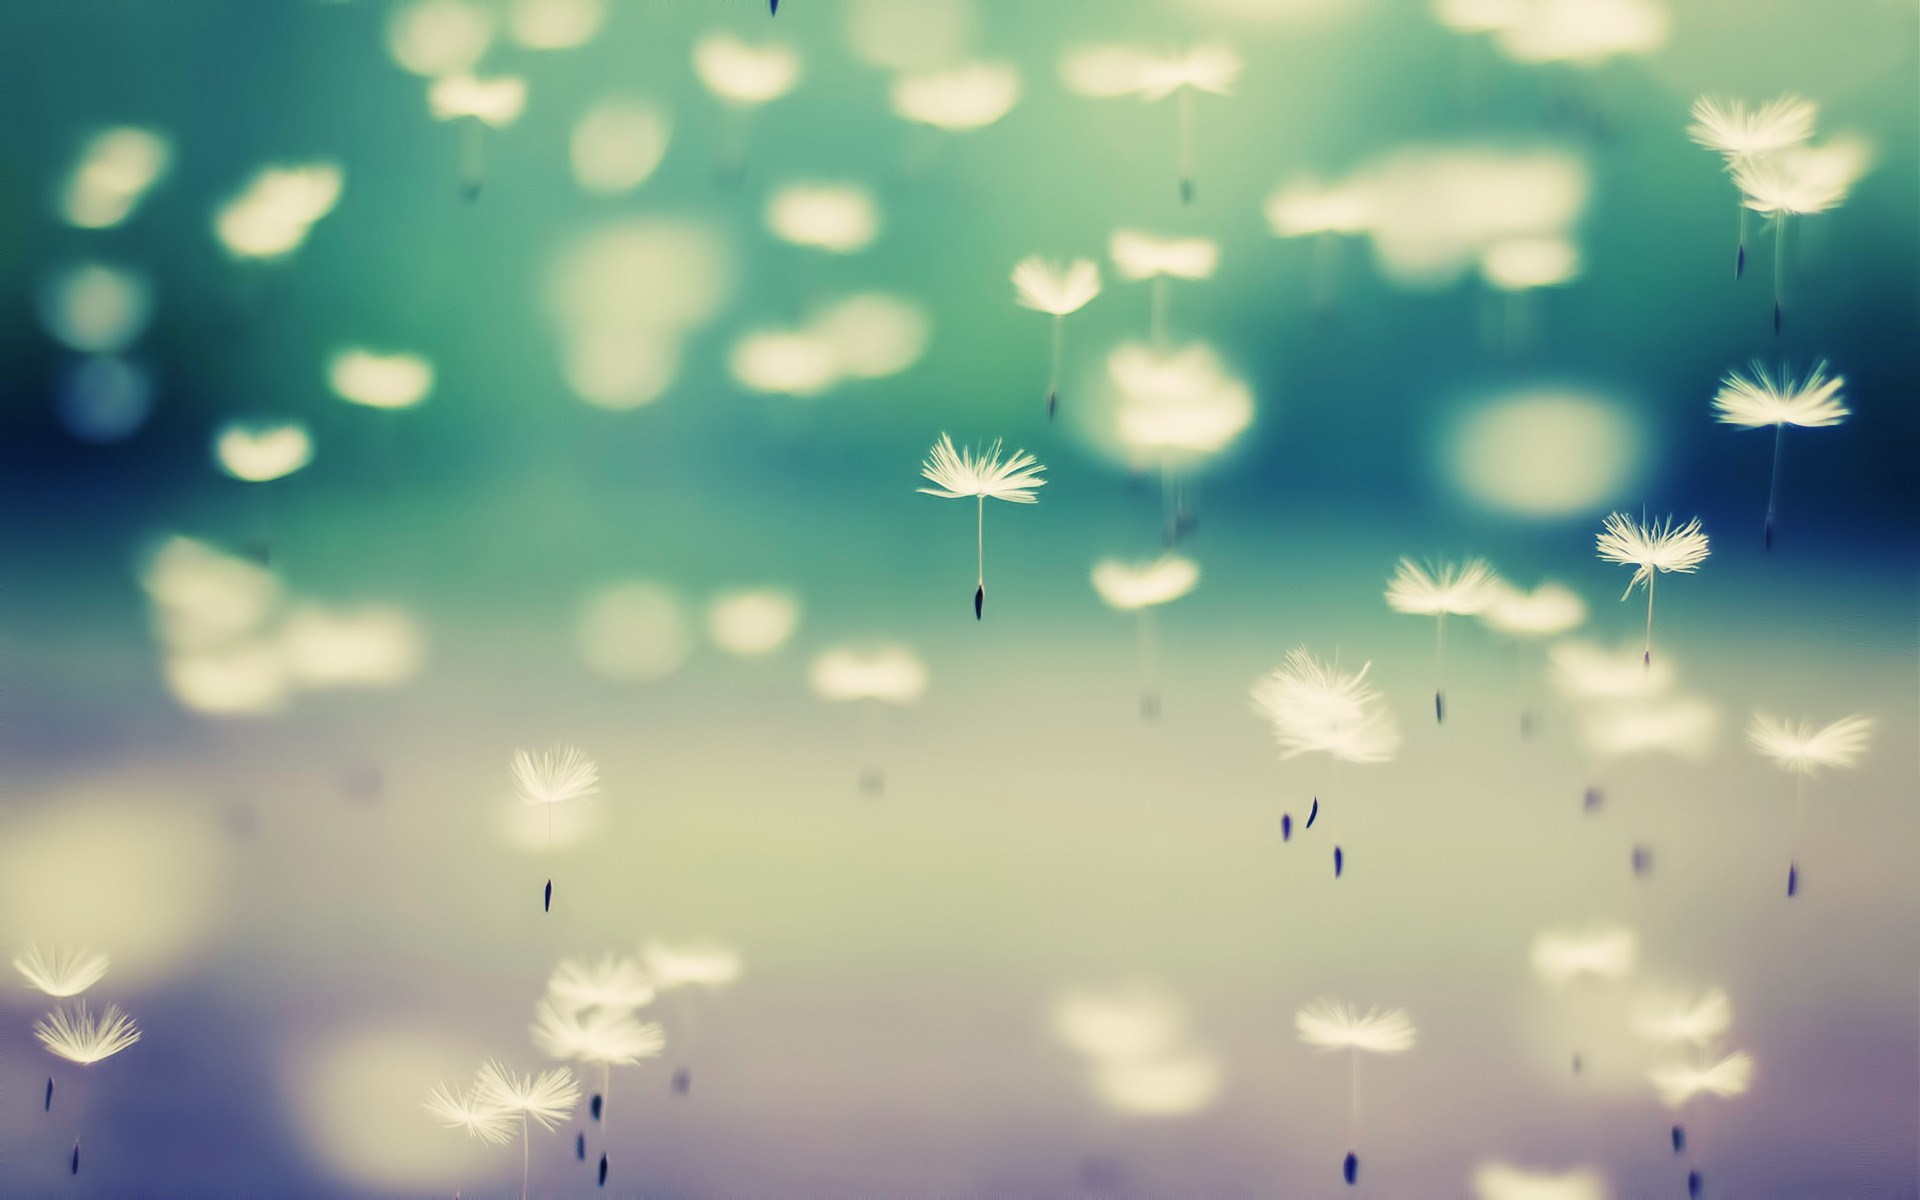 Cool Dandelion Seeds Wallpaper